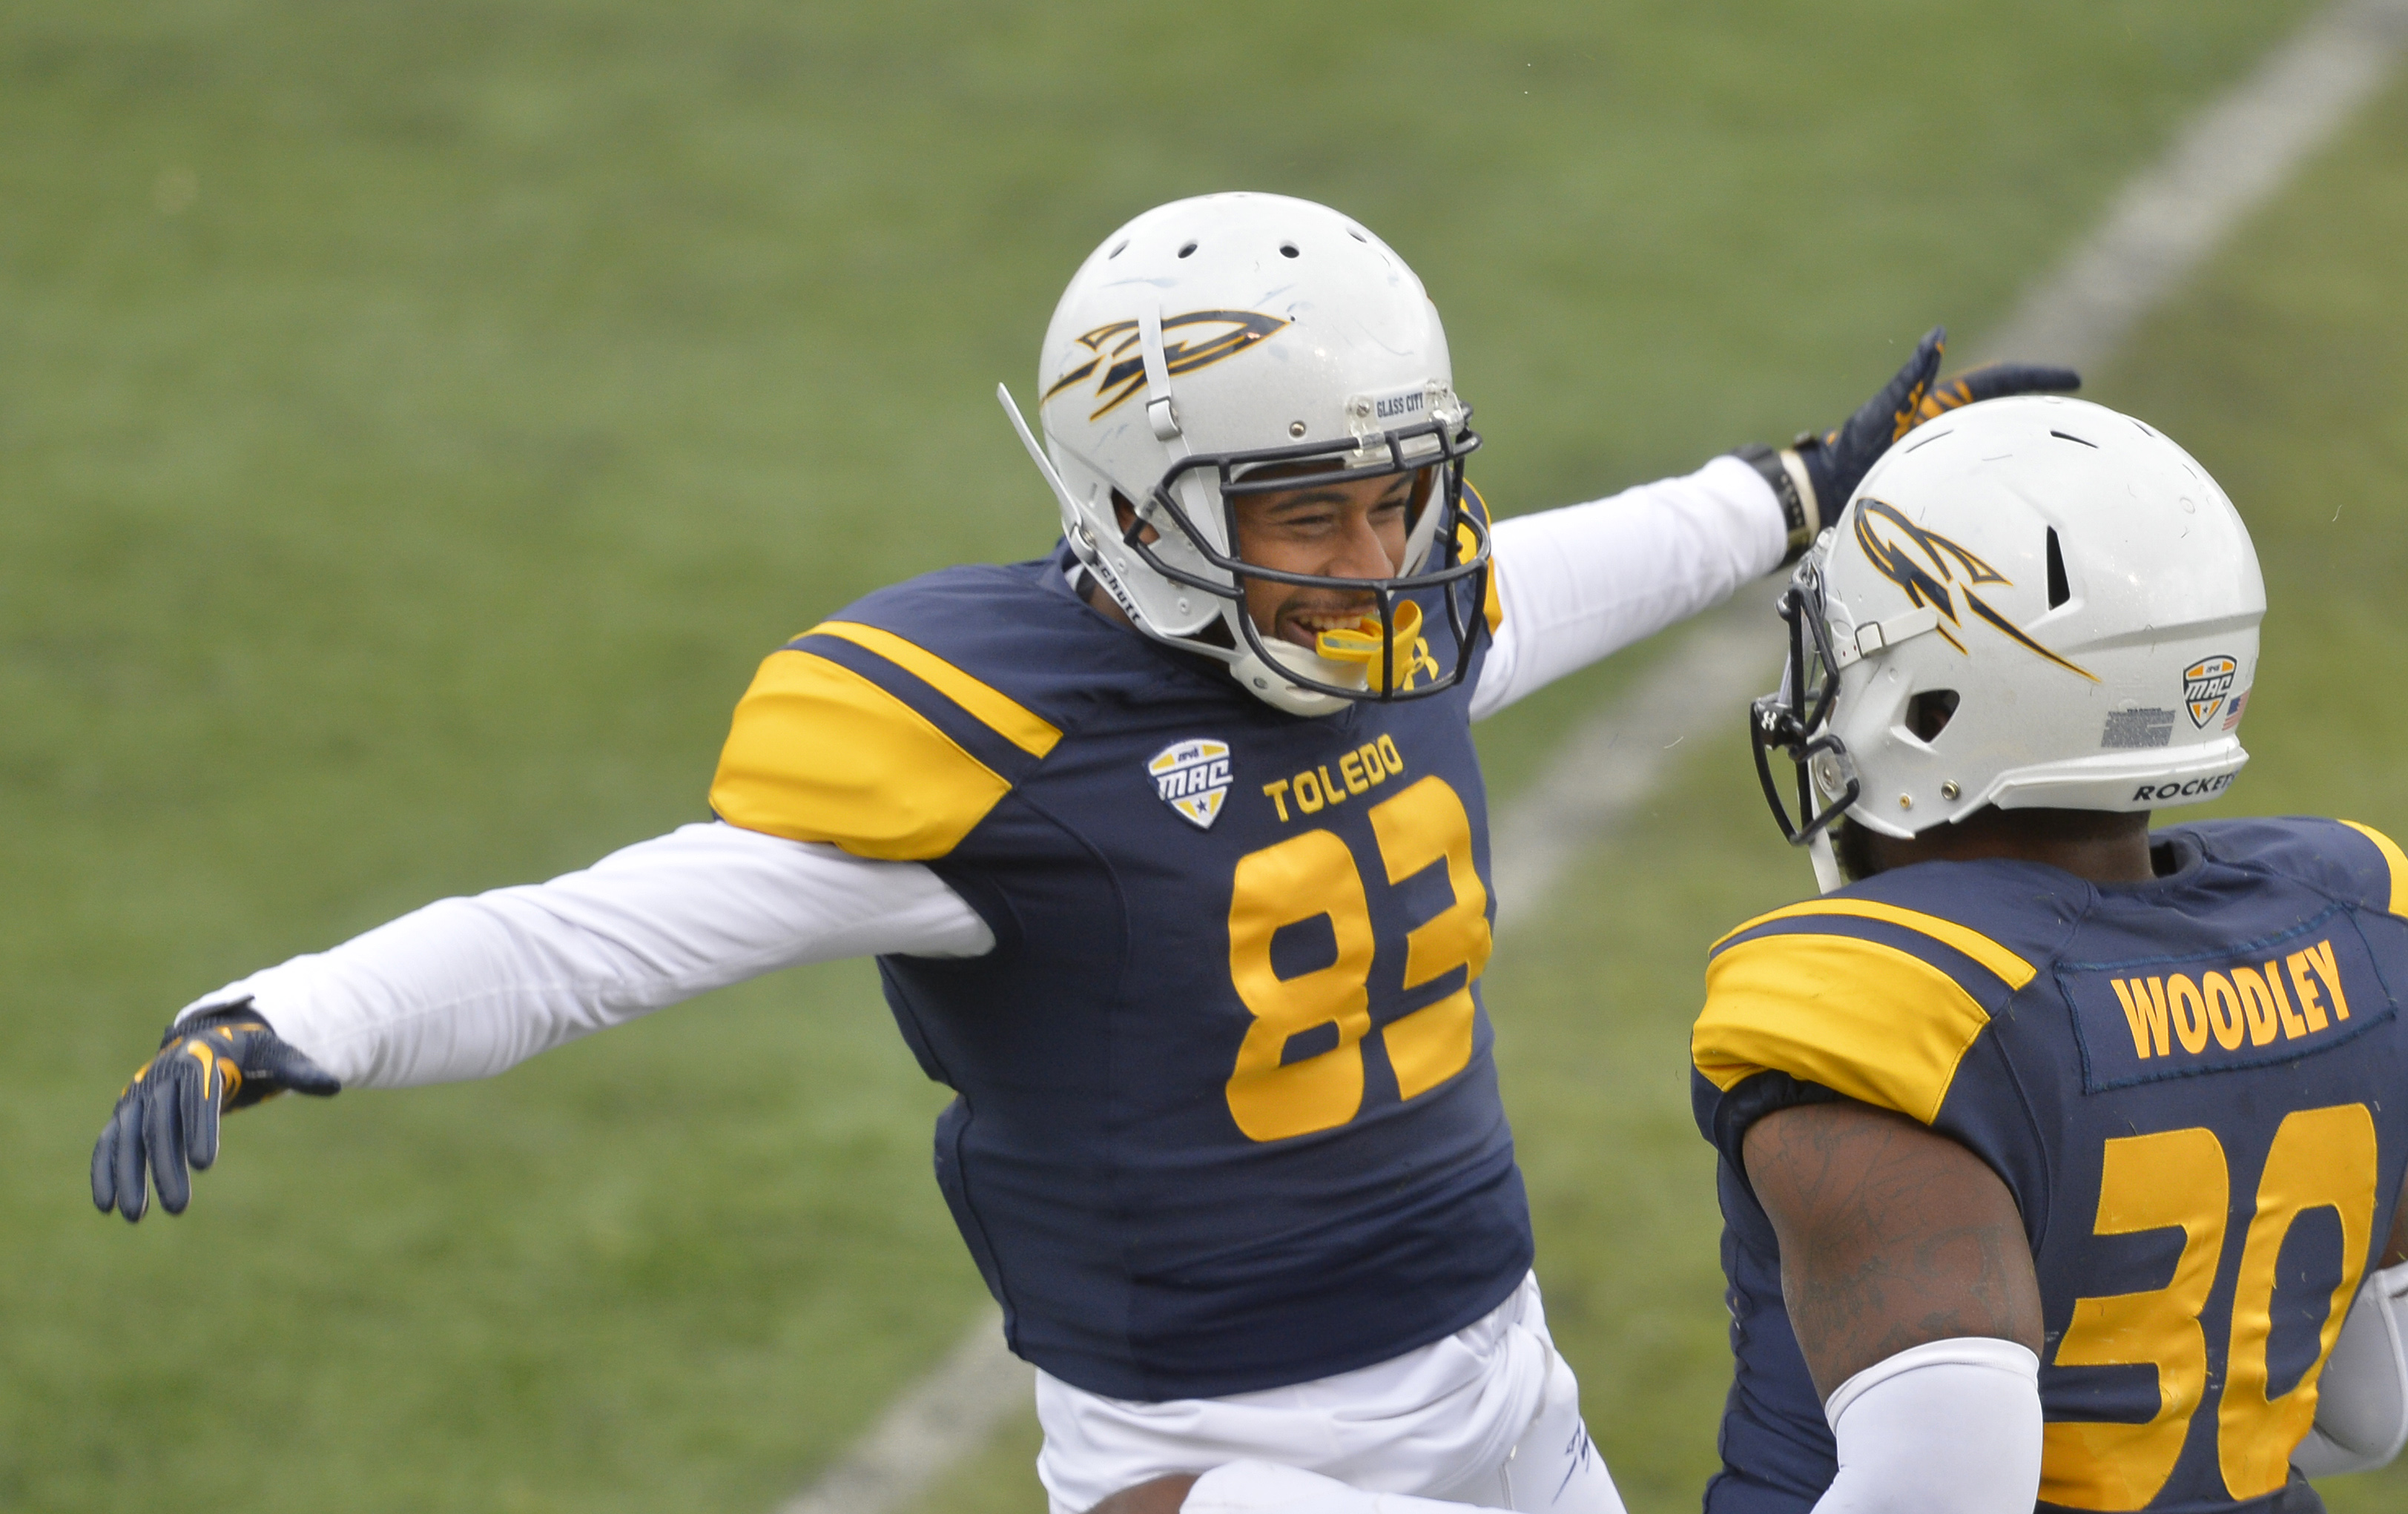 Toledo wide receiver Zach Yousey (83) celebrates his 14-yard touchdown catch with linebacker Ja'Wuan Woodley in the third quarter of an NCAA college football game against Eastern Michigan, Saturday, Oct. 17, 2015, in Toledo, Ohio. (AP Photo/David Richard)